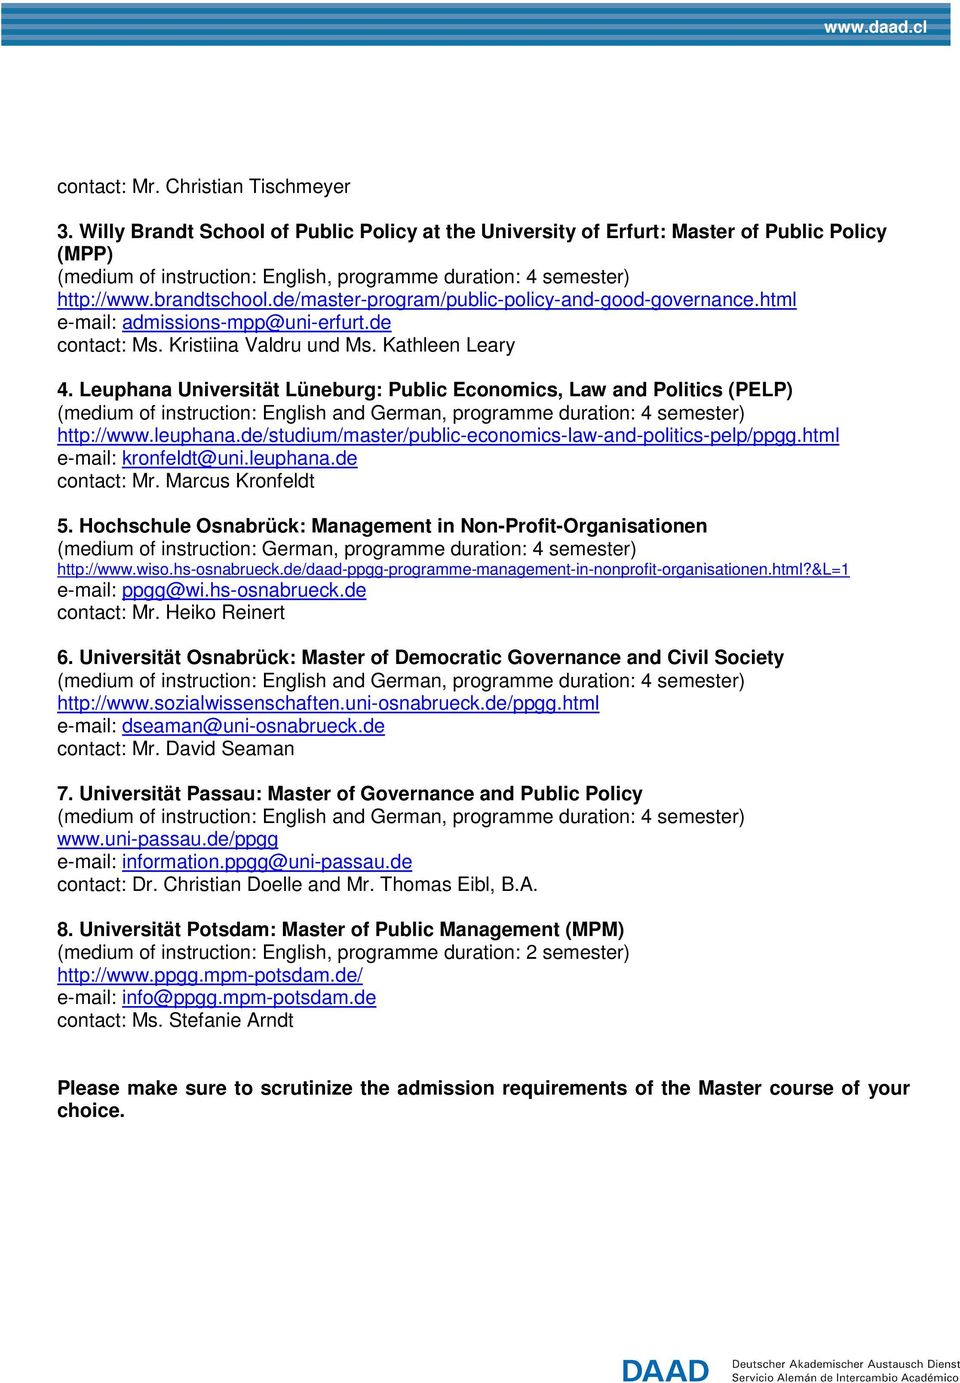 de/master-program/public-policy-and-good-governance.html e-mail: admissions-mpp@uni-erfurt.de contact: Ms. Kristiina Valdru und Ms. Kathleen Leary 4.